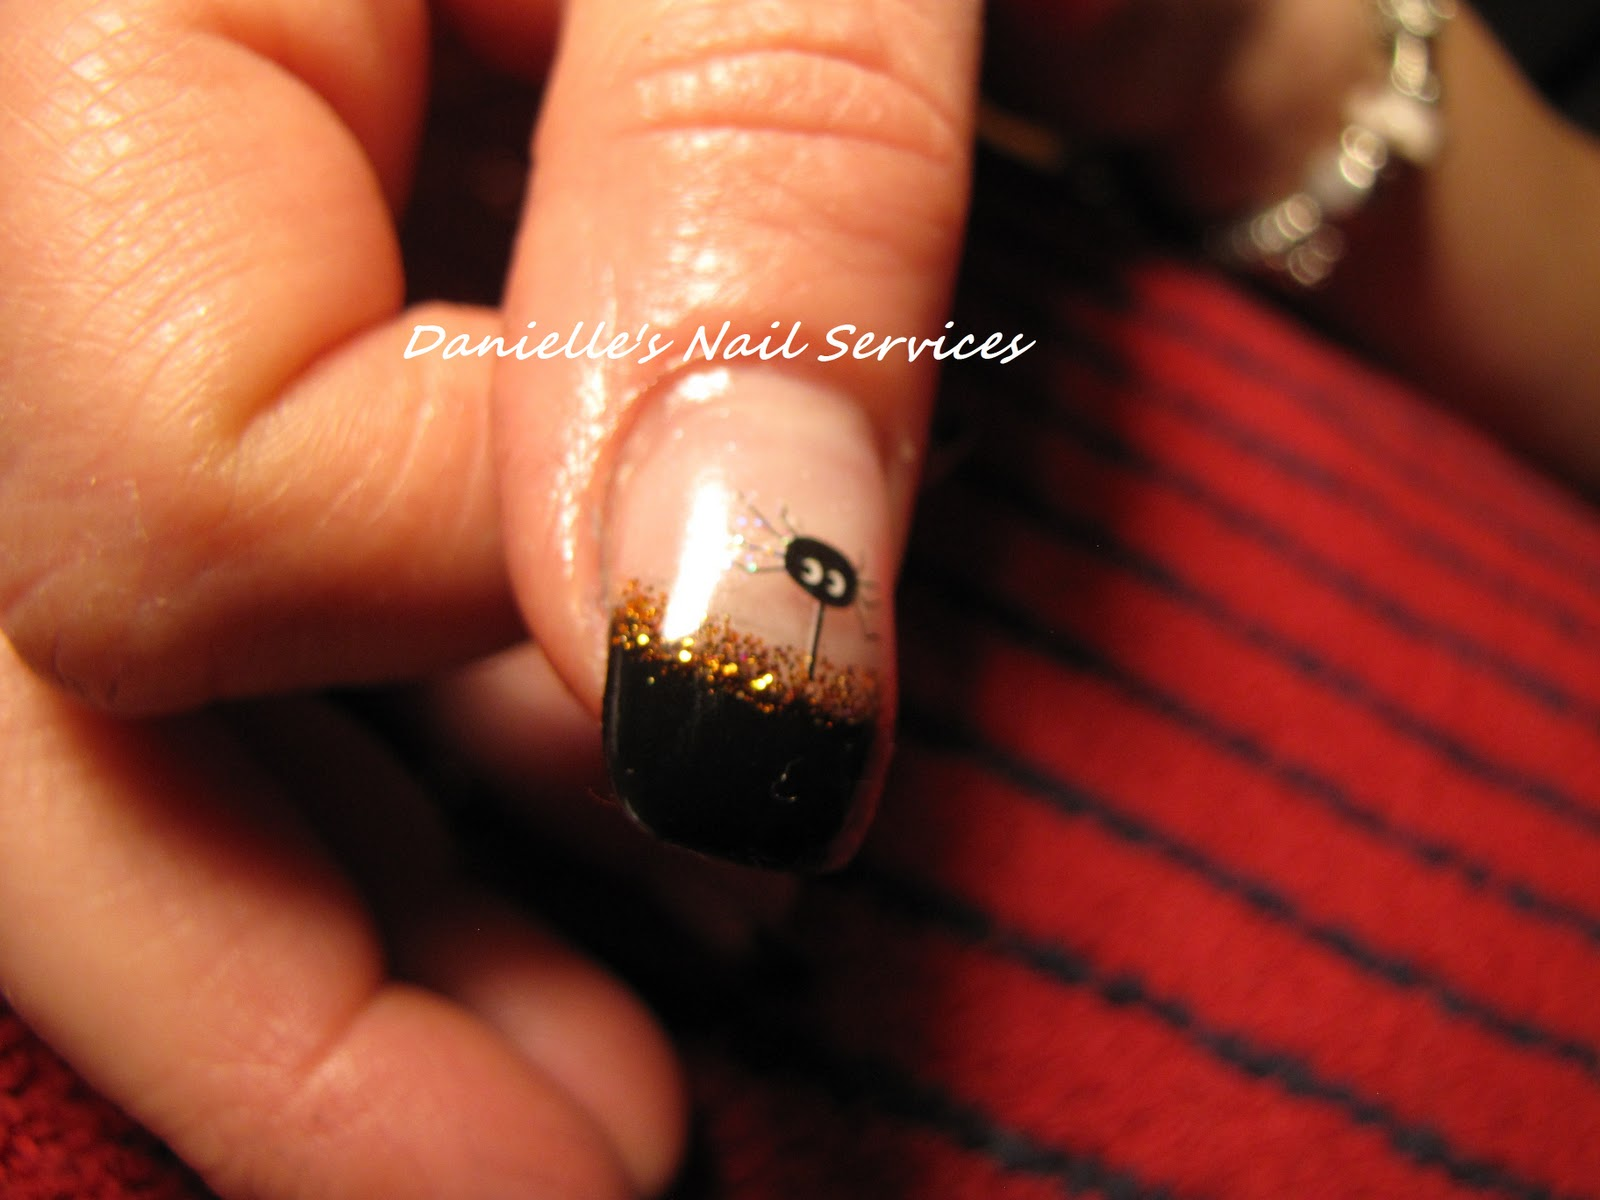 Danielle's Nail Services: October 2011 Nails